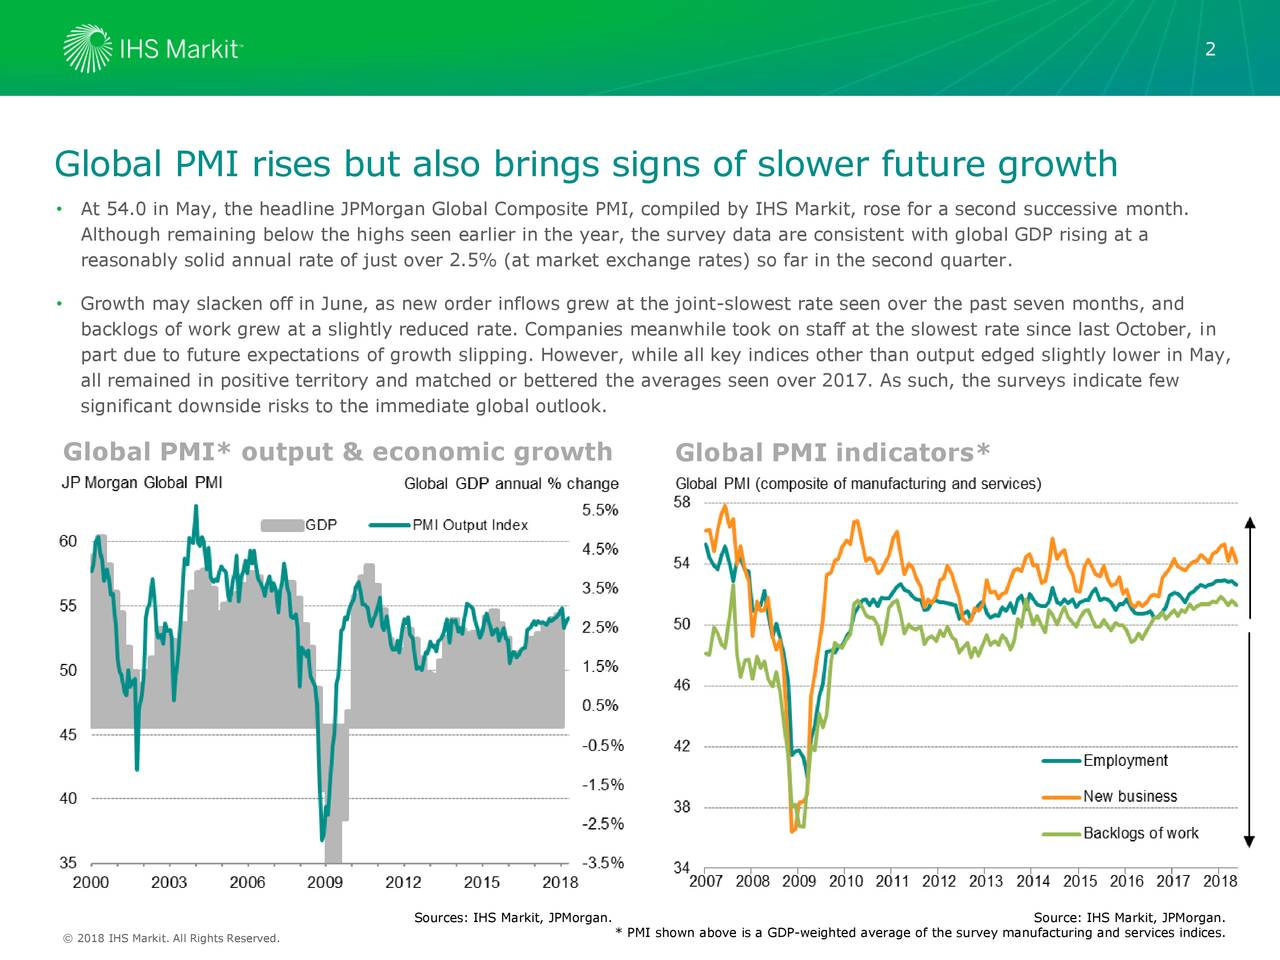 Global PMI rises but also brings signs of slower future growth • At 54.0 in May, the headline JPMorgan Global Composite PMI, compiled by IHS Markit, rose for a second successive month. Although remaining below the highs seen earlier in the year, the survey data are consistent with global GDP rising at a reasonably solid annual rate of just over 2.5% (at market exchange rates) so far in the second quarter. • Growth may slacken off in June, as new order inflows grew at the joint-slowest rate seen over the past seven months, and backlogs of work grew at a slightly reduced rate. Companies meanwhile took on staff at the slowest rate since last October, in part due to future expectations of growth slipping. However, while all key indices other than output edged slightly lower in May, all remained in positive territory and matched or bettered the averages seen over 2017. As such, the surveys indicate few significant downside risks to the immediate global outlook. Global PMI* output & economic growth Global PMI indicators* Sources: IHS Markit, JPMorgan. Source: IHS Markit, JPMorgan. © 2016 IHS Markit. All Rights Reserved. * PMI shown above is a GDP-weighted average of the survey manufacturing and services indices.